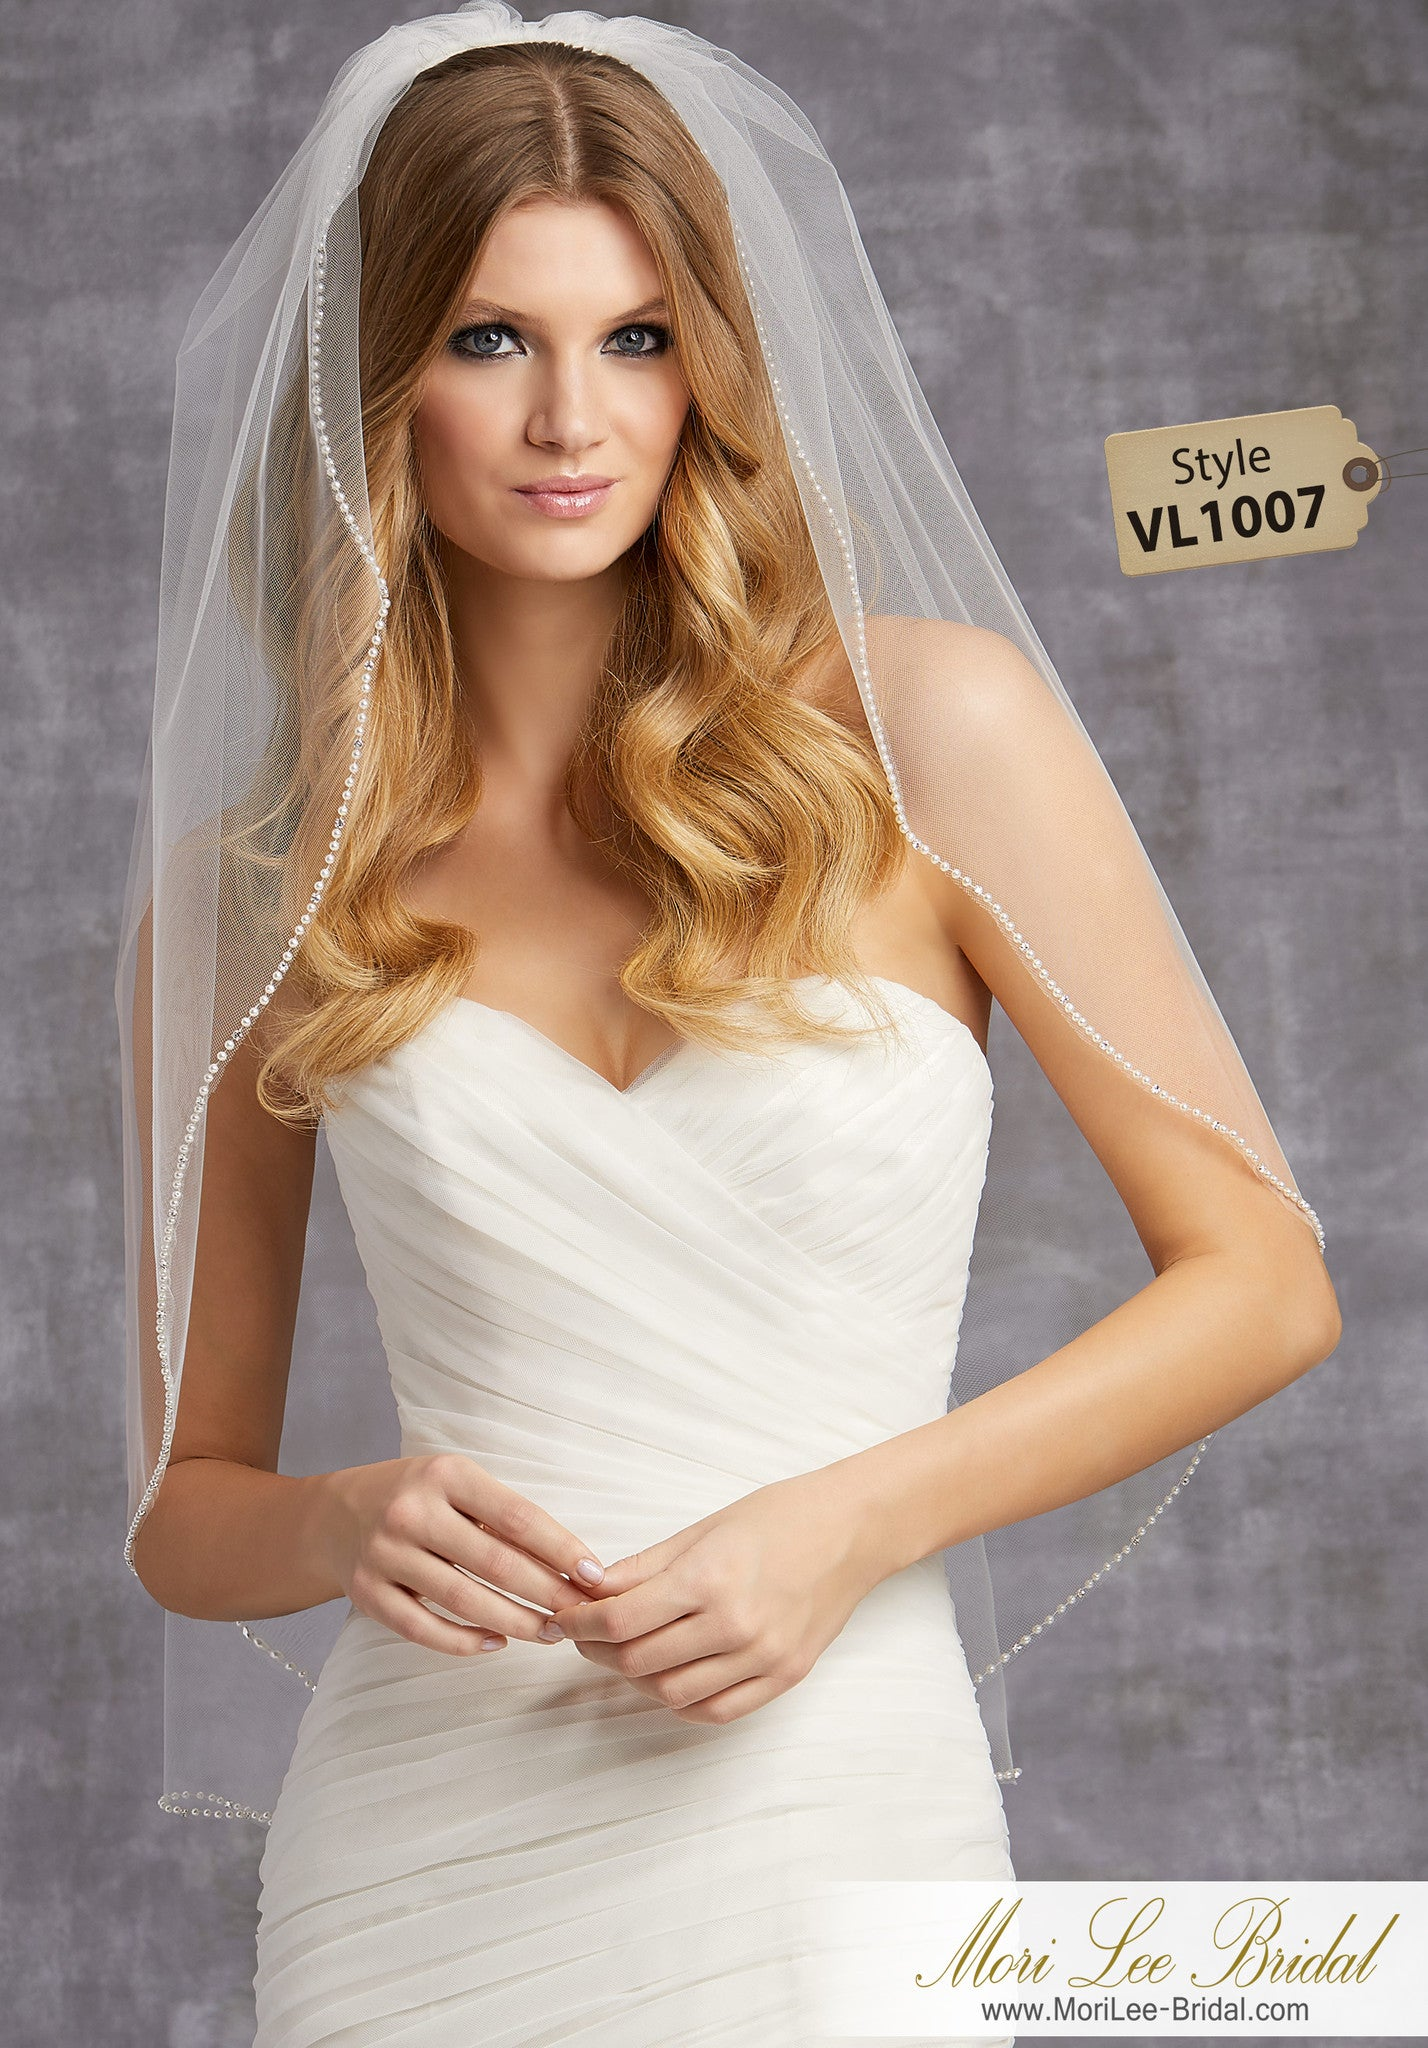 VL1007F - Mori Lee Bridal